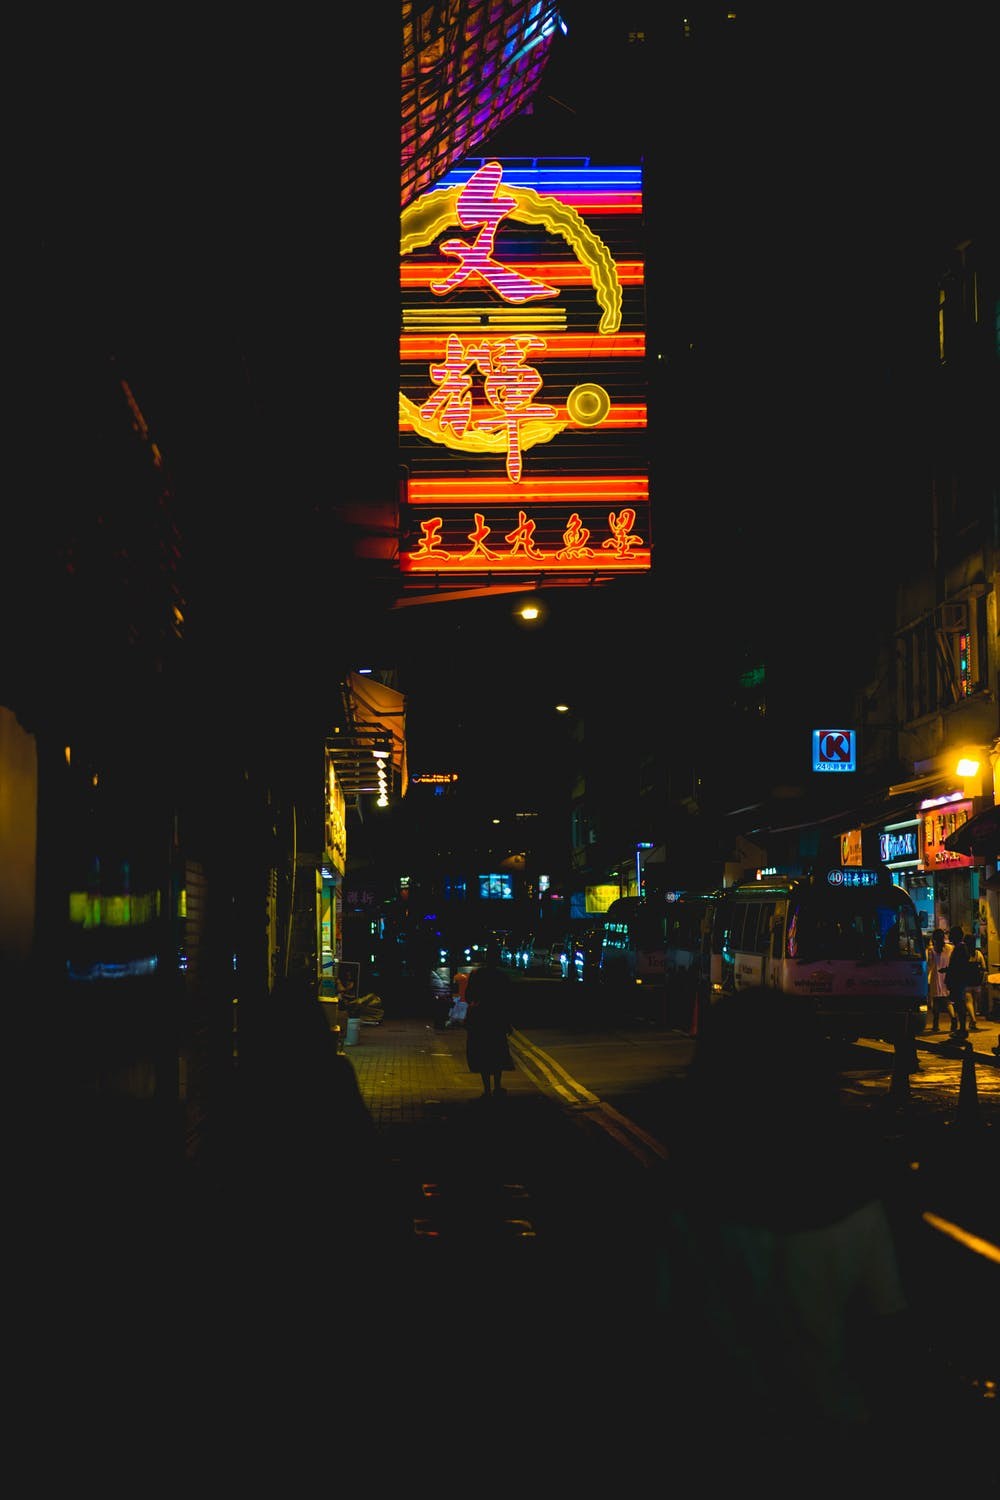 Vertical image of Hong Kong with neon signs